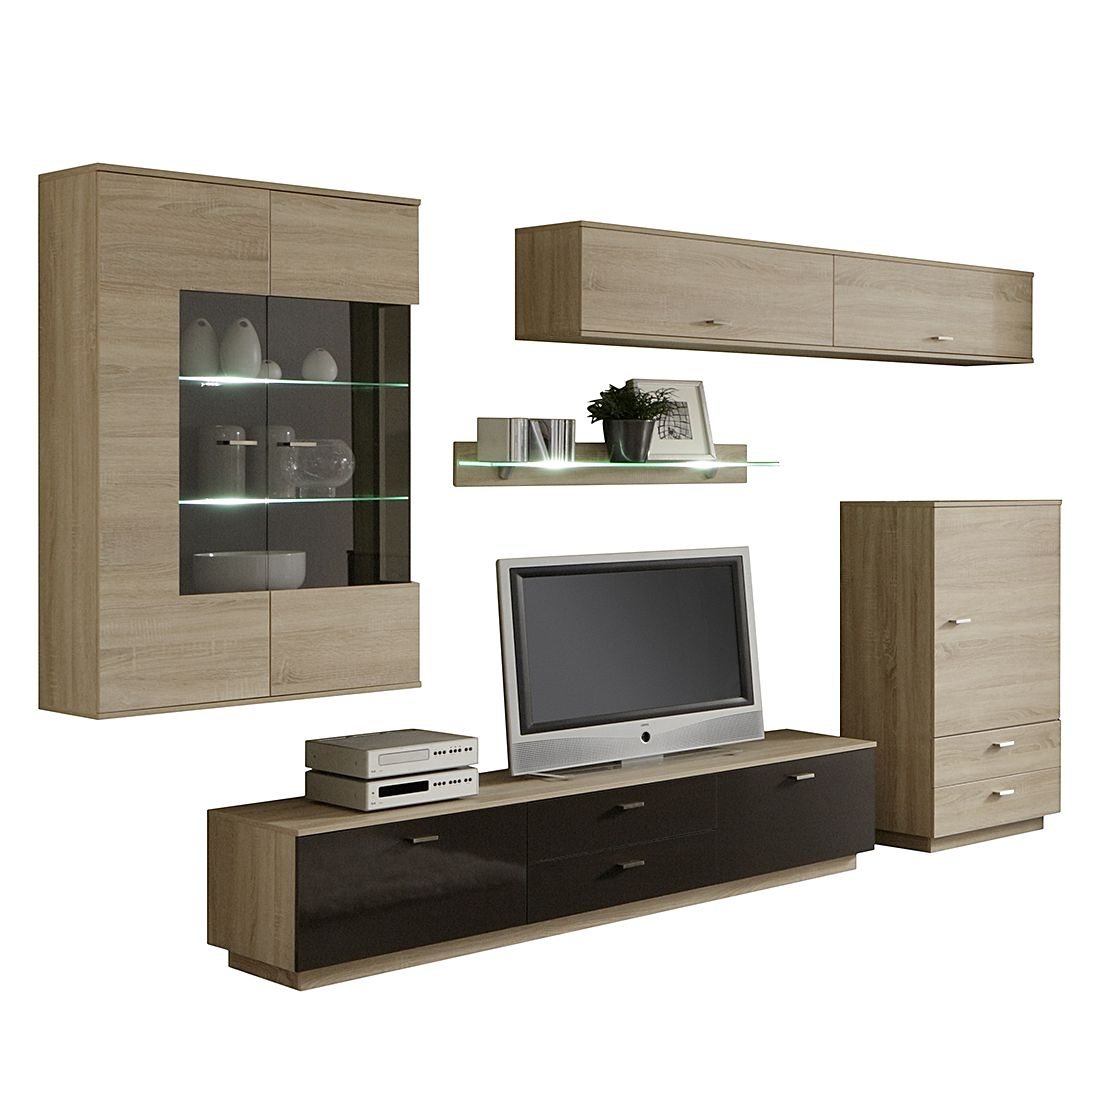 wohnwand br gge i eiche s gerau dekor absetzung. Black Bedroom Furniture Sets. Home Design Ideas